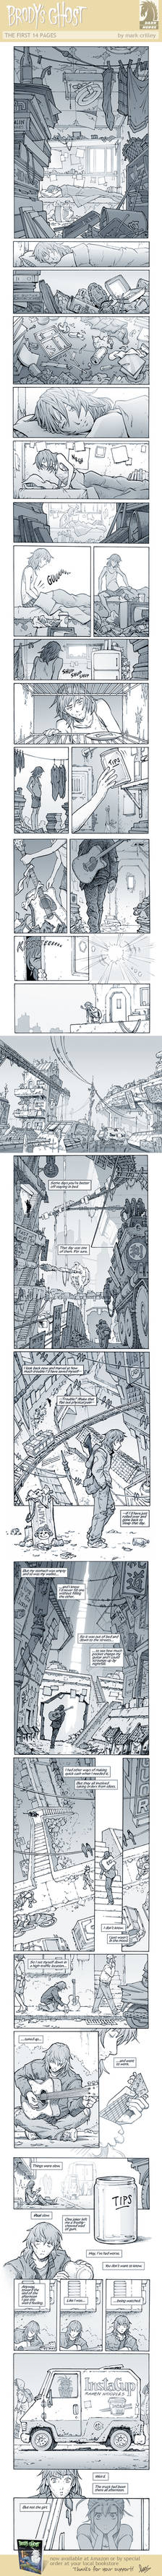 Brody's Ghost 14-Page Preview